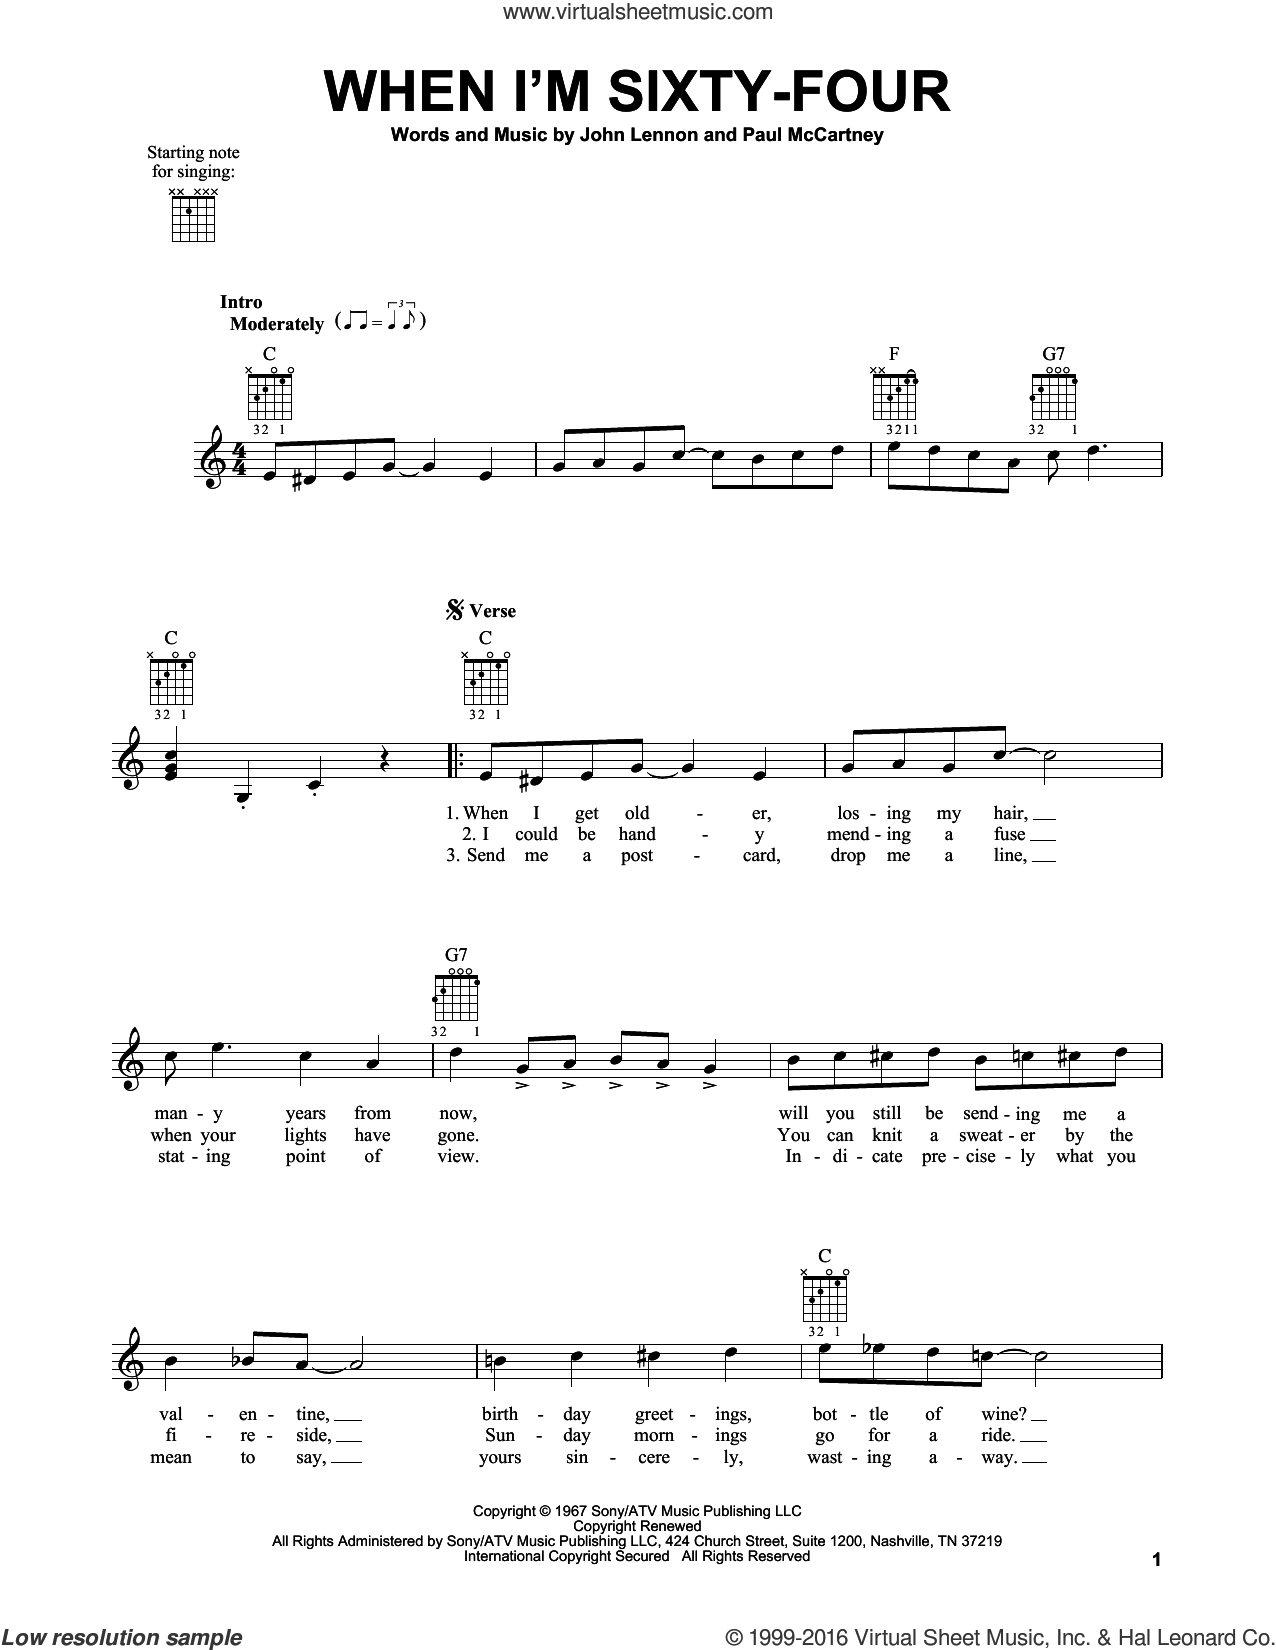 When I'm Sixty-Four sheet music for guitar solo (chords) by Paul McCartney